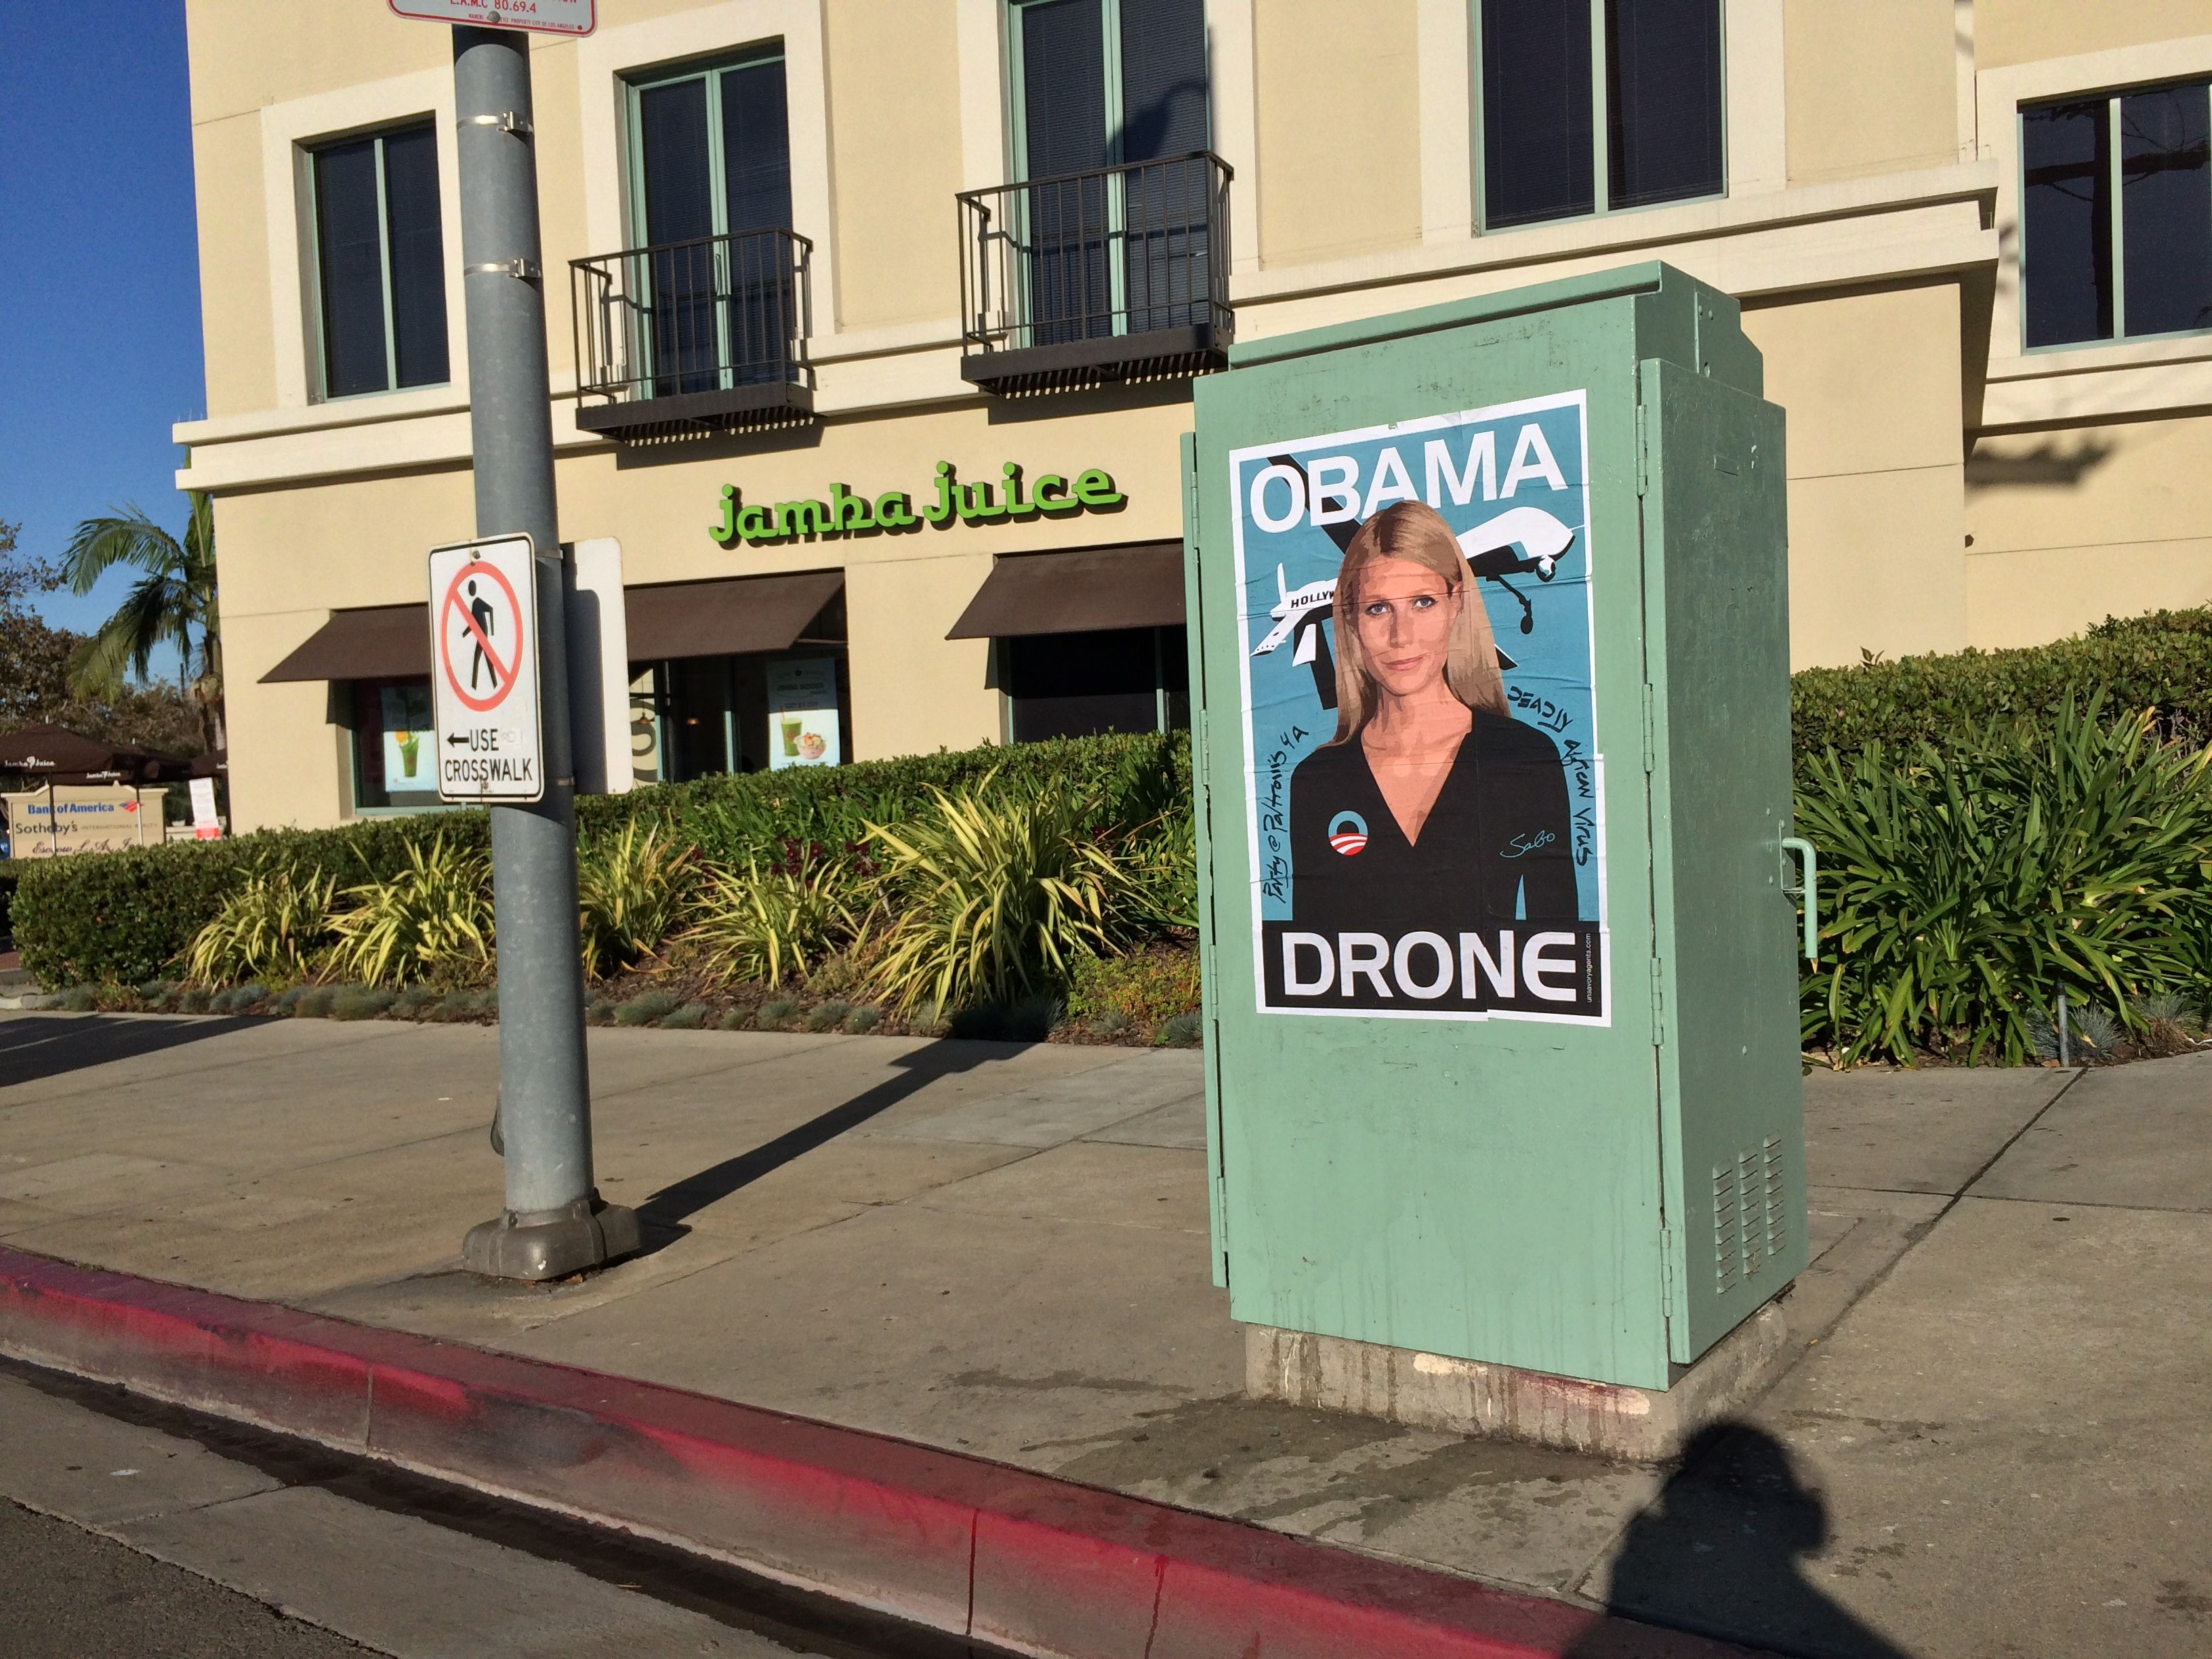 Gwyneth Paltrow Obama Drone posters poster Sabo President Obama DNC fundraiser L.A. Los Angeles Brentwood neighborhood neighbor neighbors hang hanging hung signs plaster plastering plastered traffic signal box boxes lamp posts bus benches anonymous conservative street artist provocative controversial subversive Unsavory Agents UnsavoryAgents outside political Democrats Democrat drones Predator plane planes flying background actor actress home house host hosting gala Jamba Juice